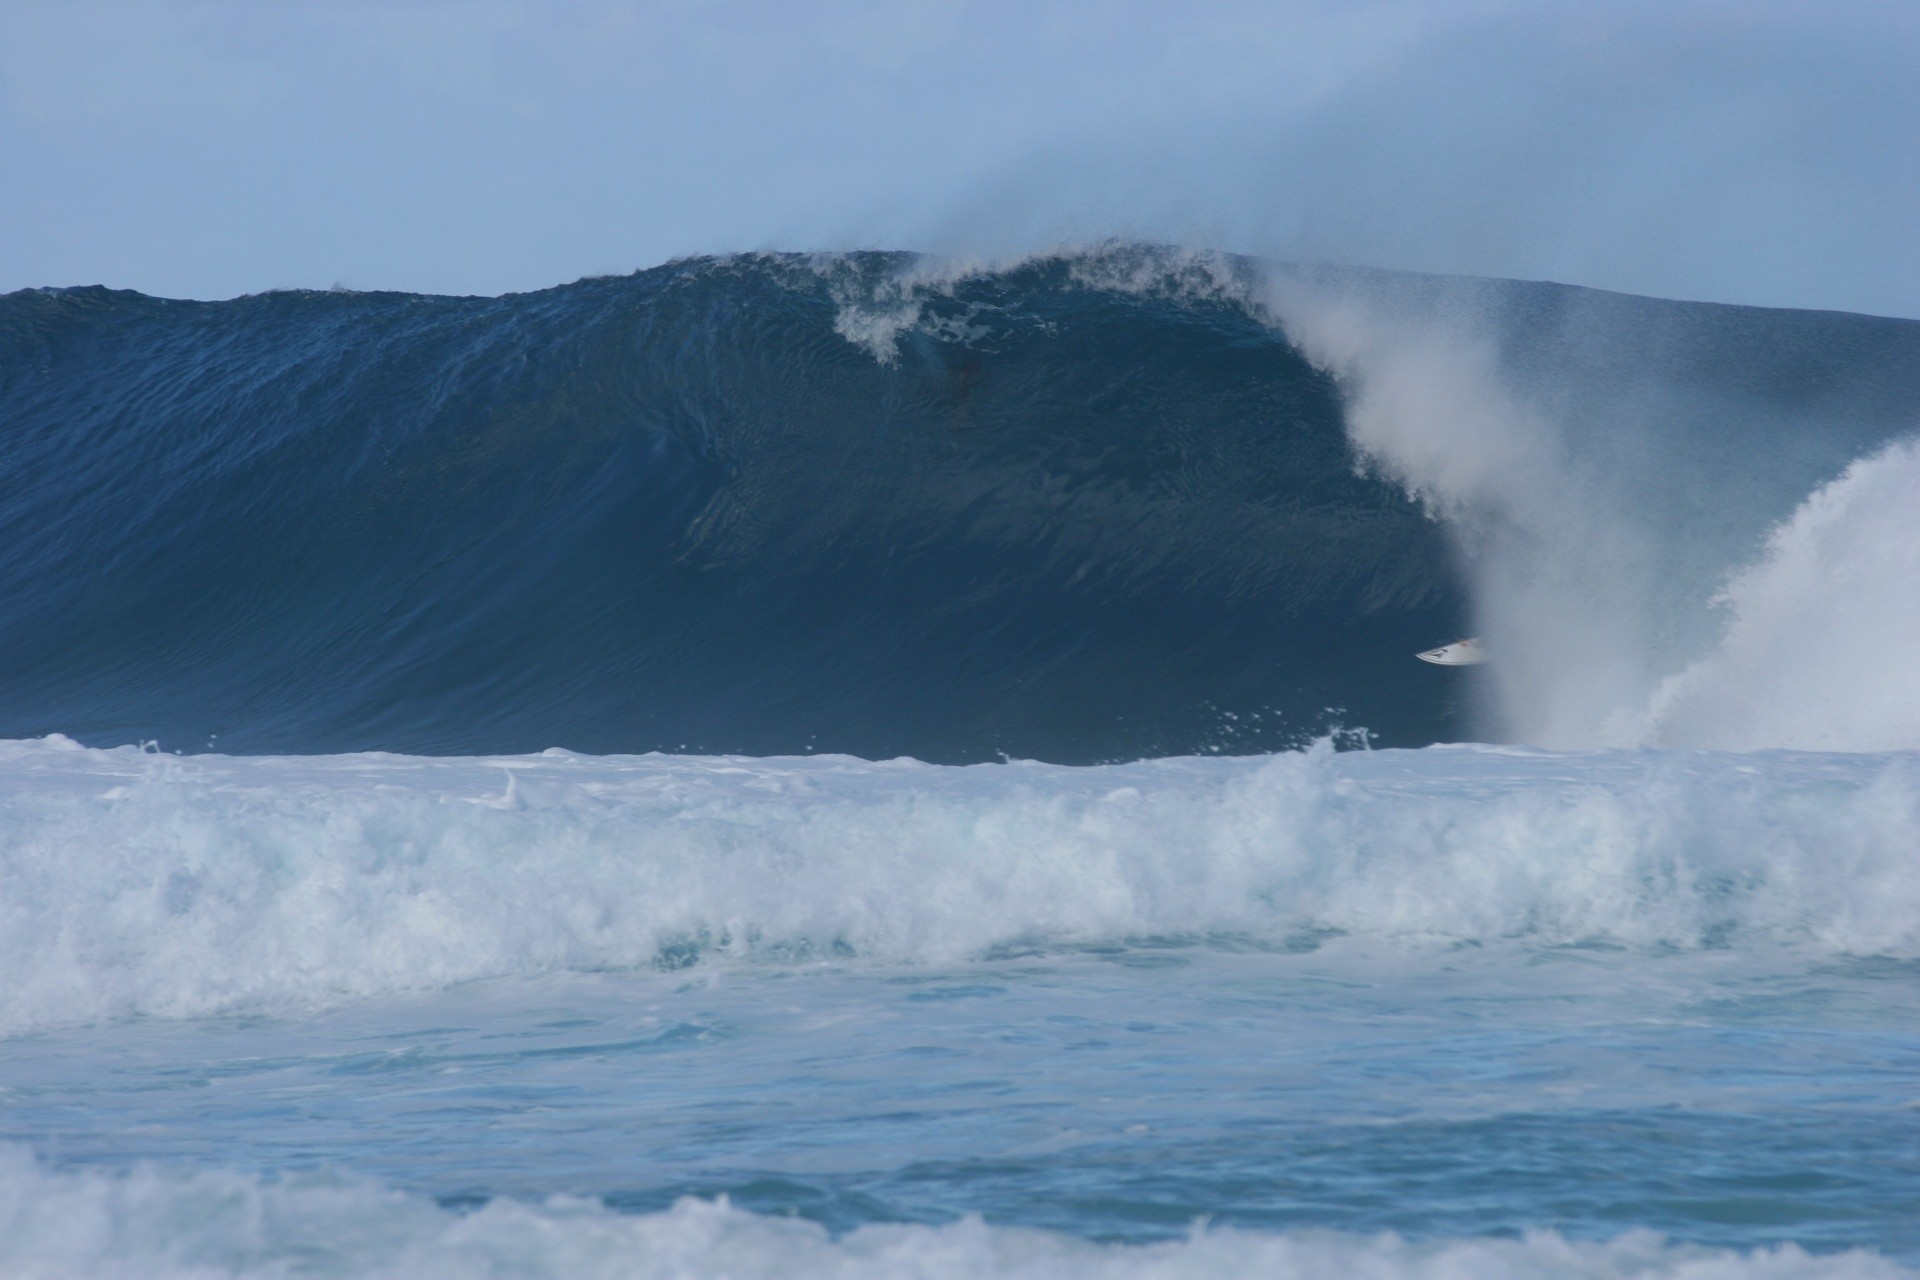 fluidshotz's photo of Pipeline & Backdoor